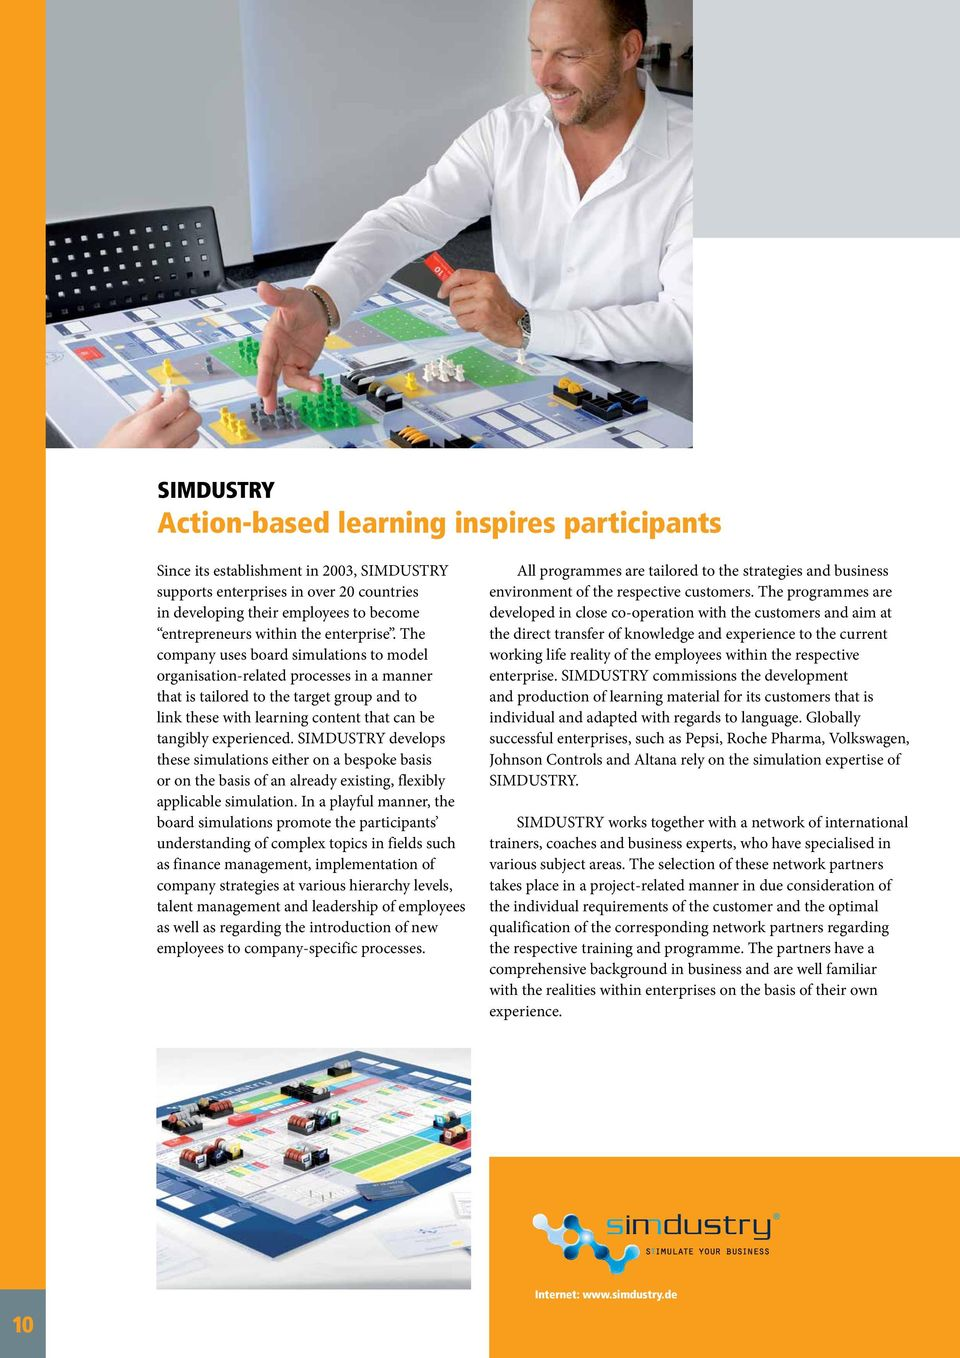 The company uses board simulations to model organisation-related processes in a manner that is tailored to the target group and to link these with learning content that can be tangibly experienced.